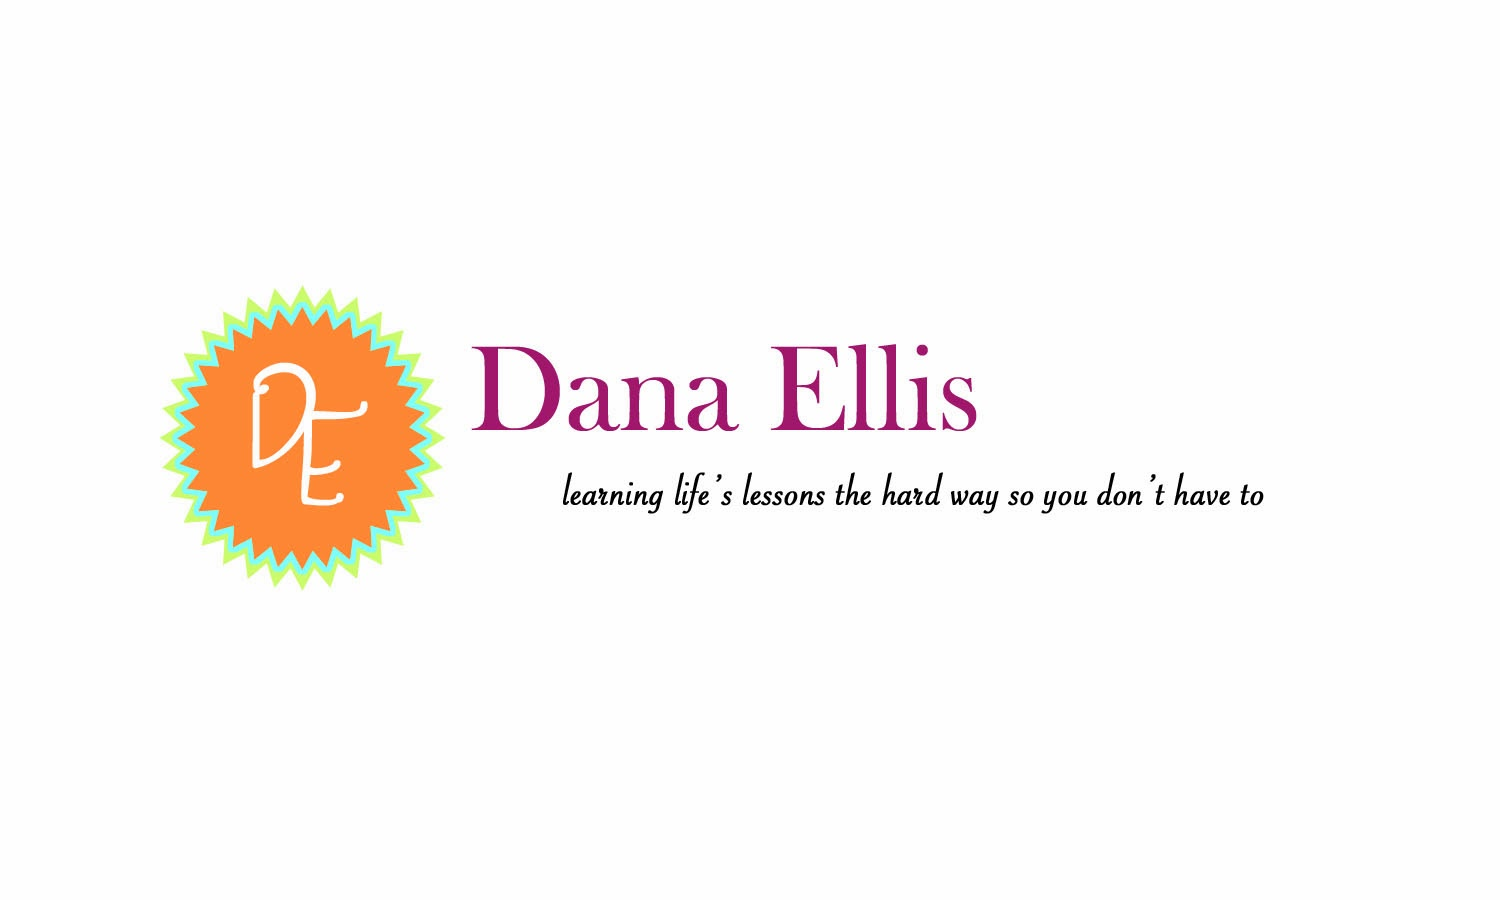 Dana Ellis: learning life's lessons the hard way so you don't have to